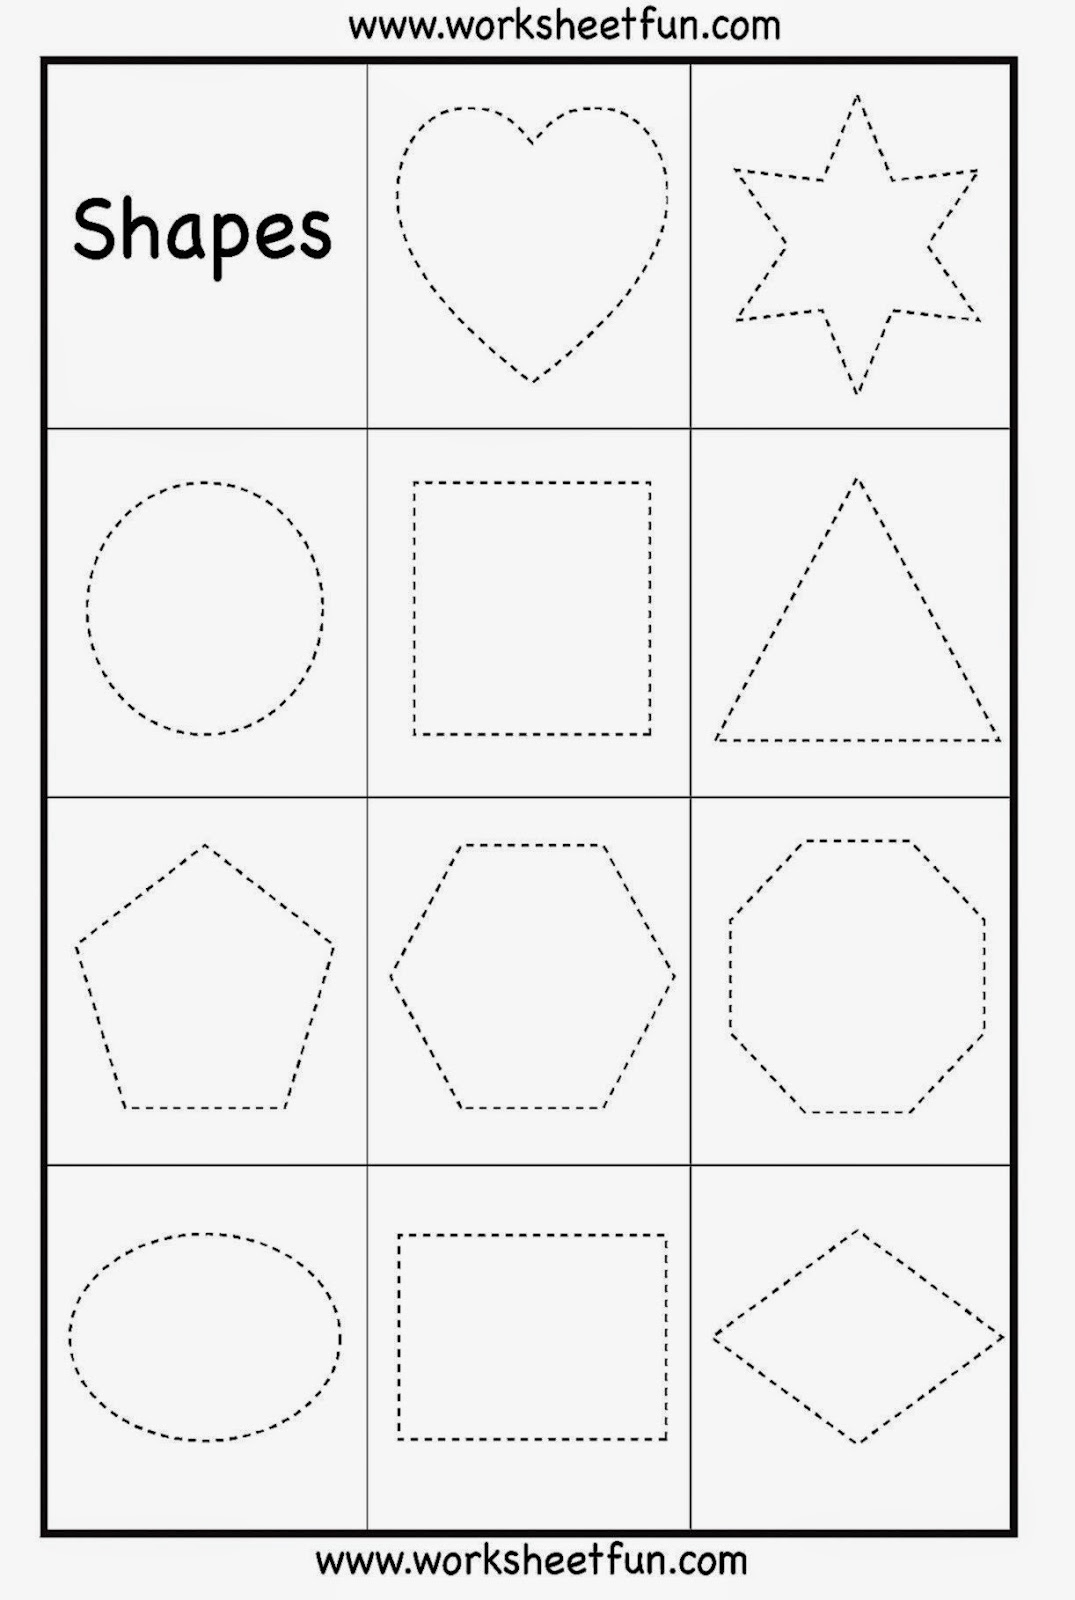 Free Printable English Worksheets for Preschool and Kindergarten